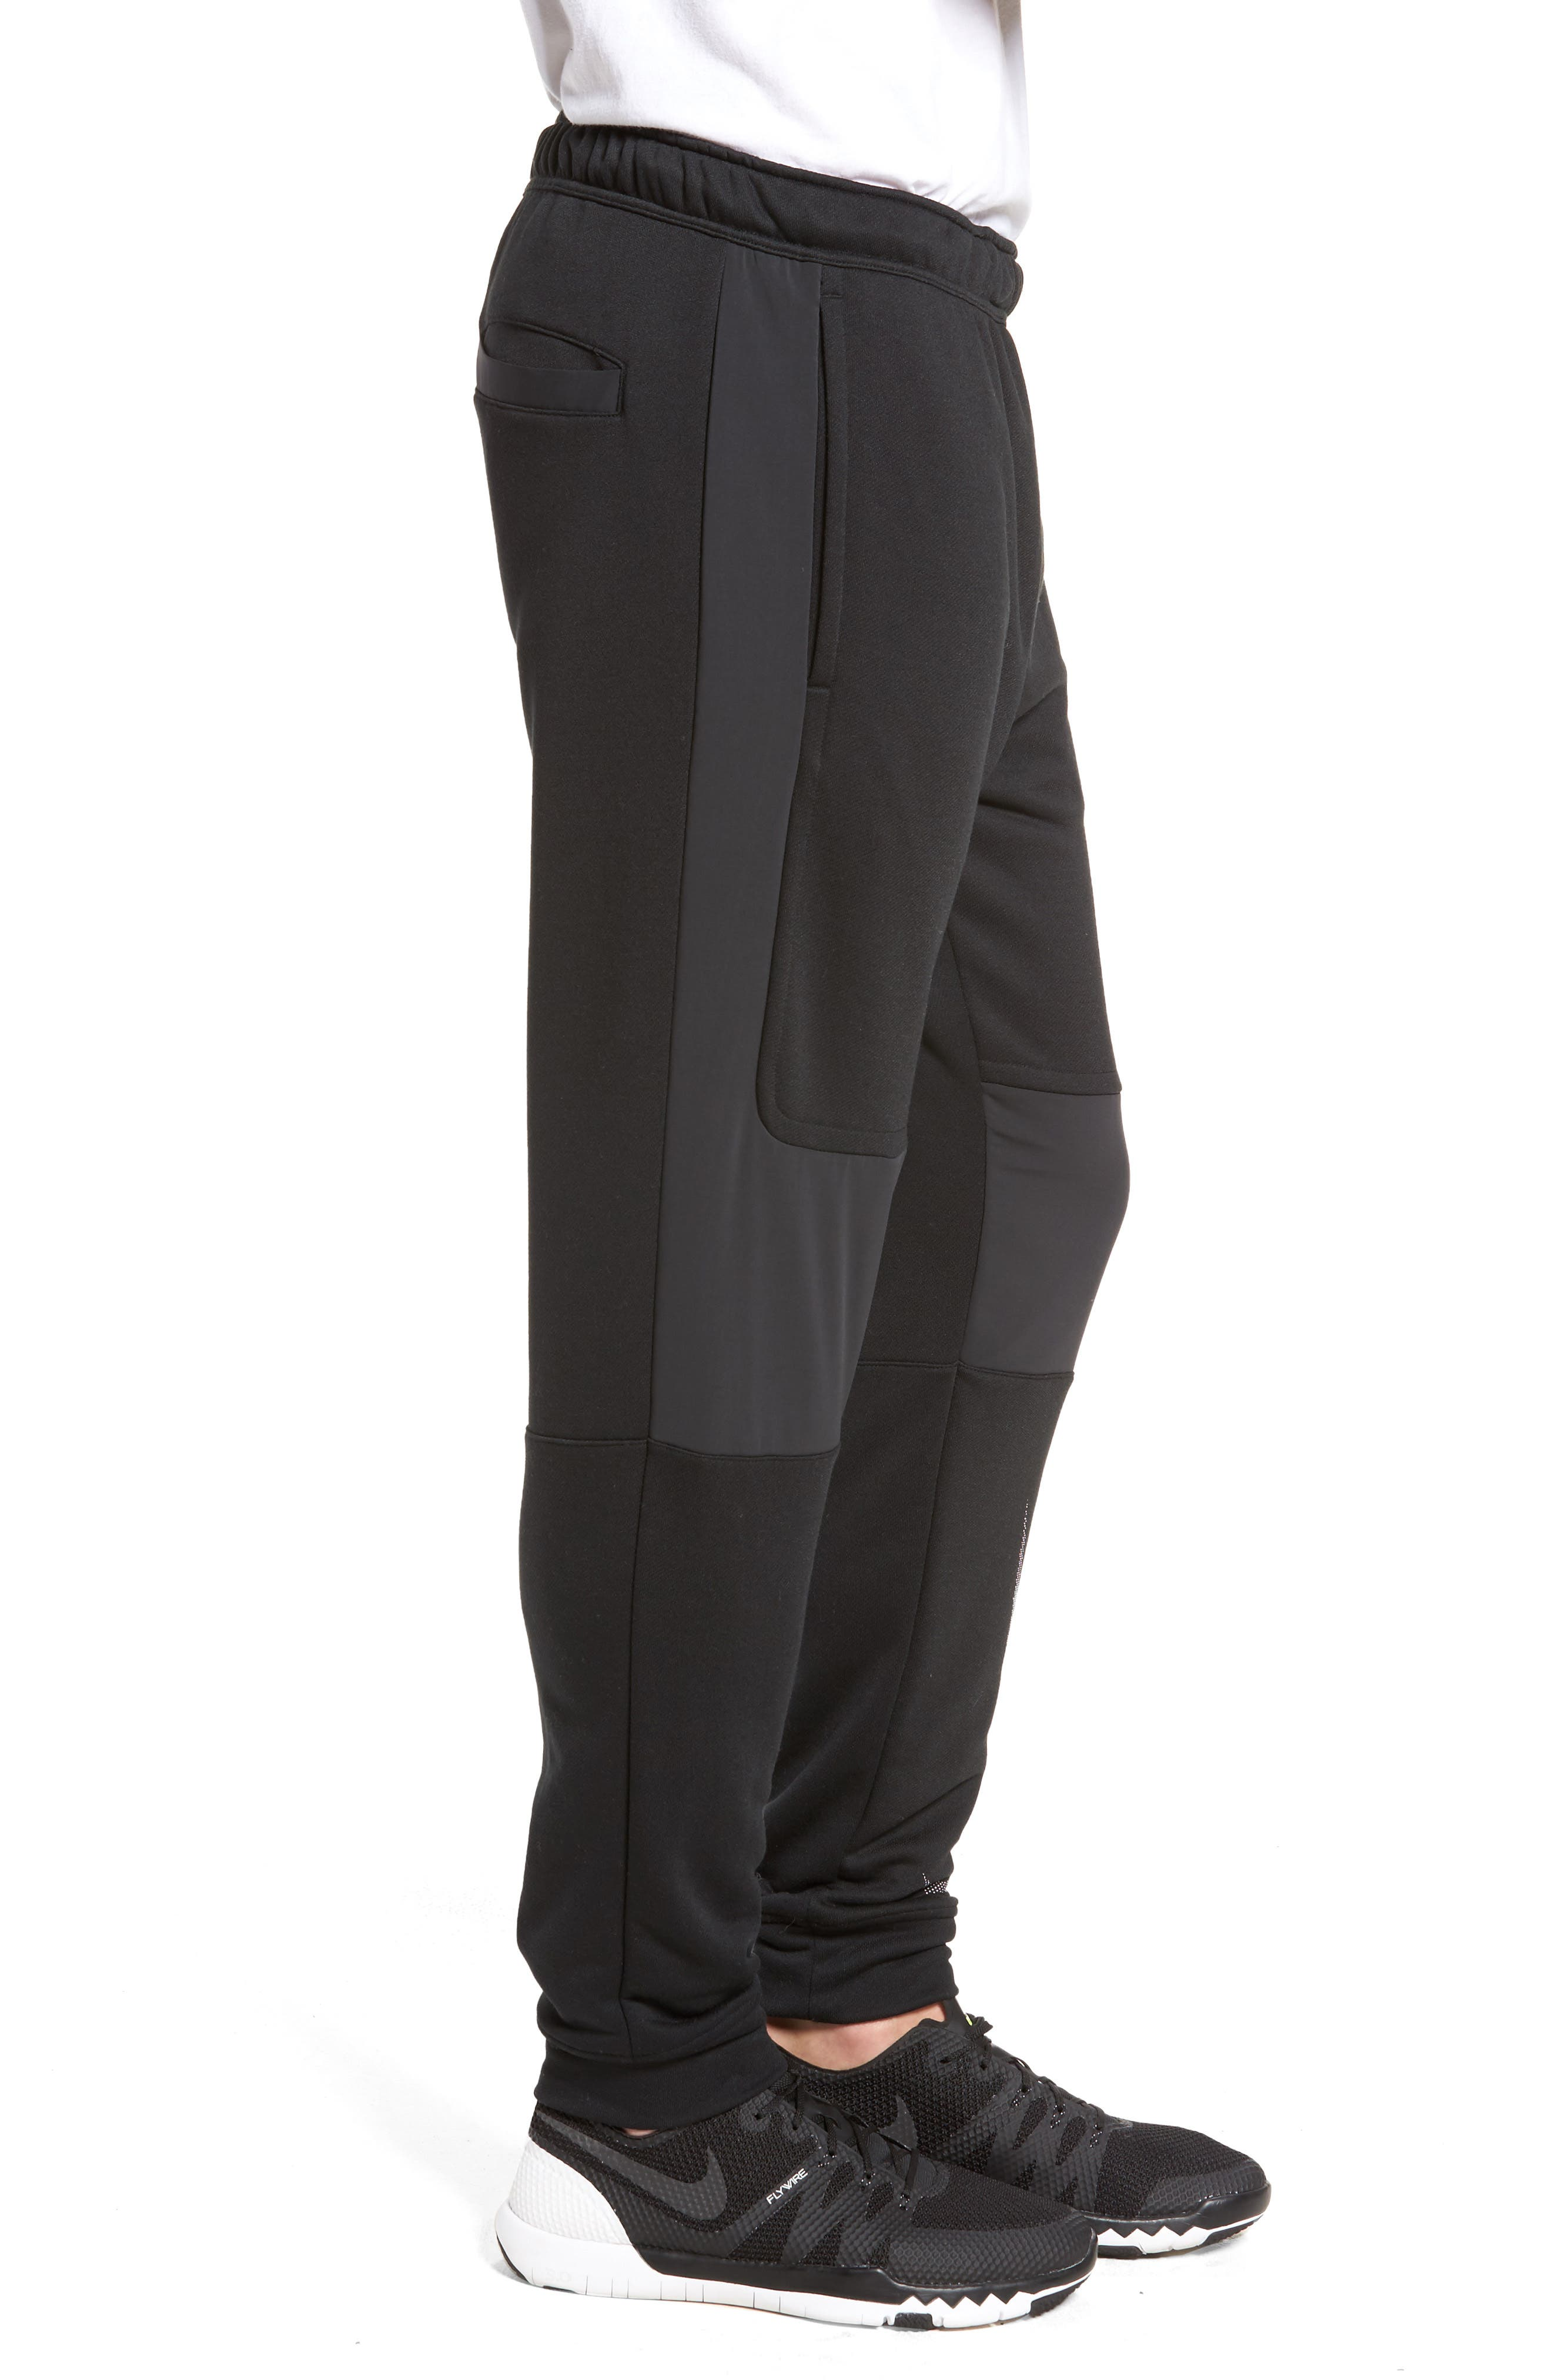 Training Project X Jogger Pants,                             Alternate thumbnail 3, color,                             010